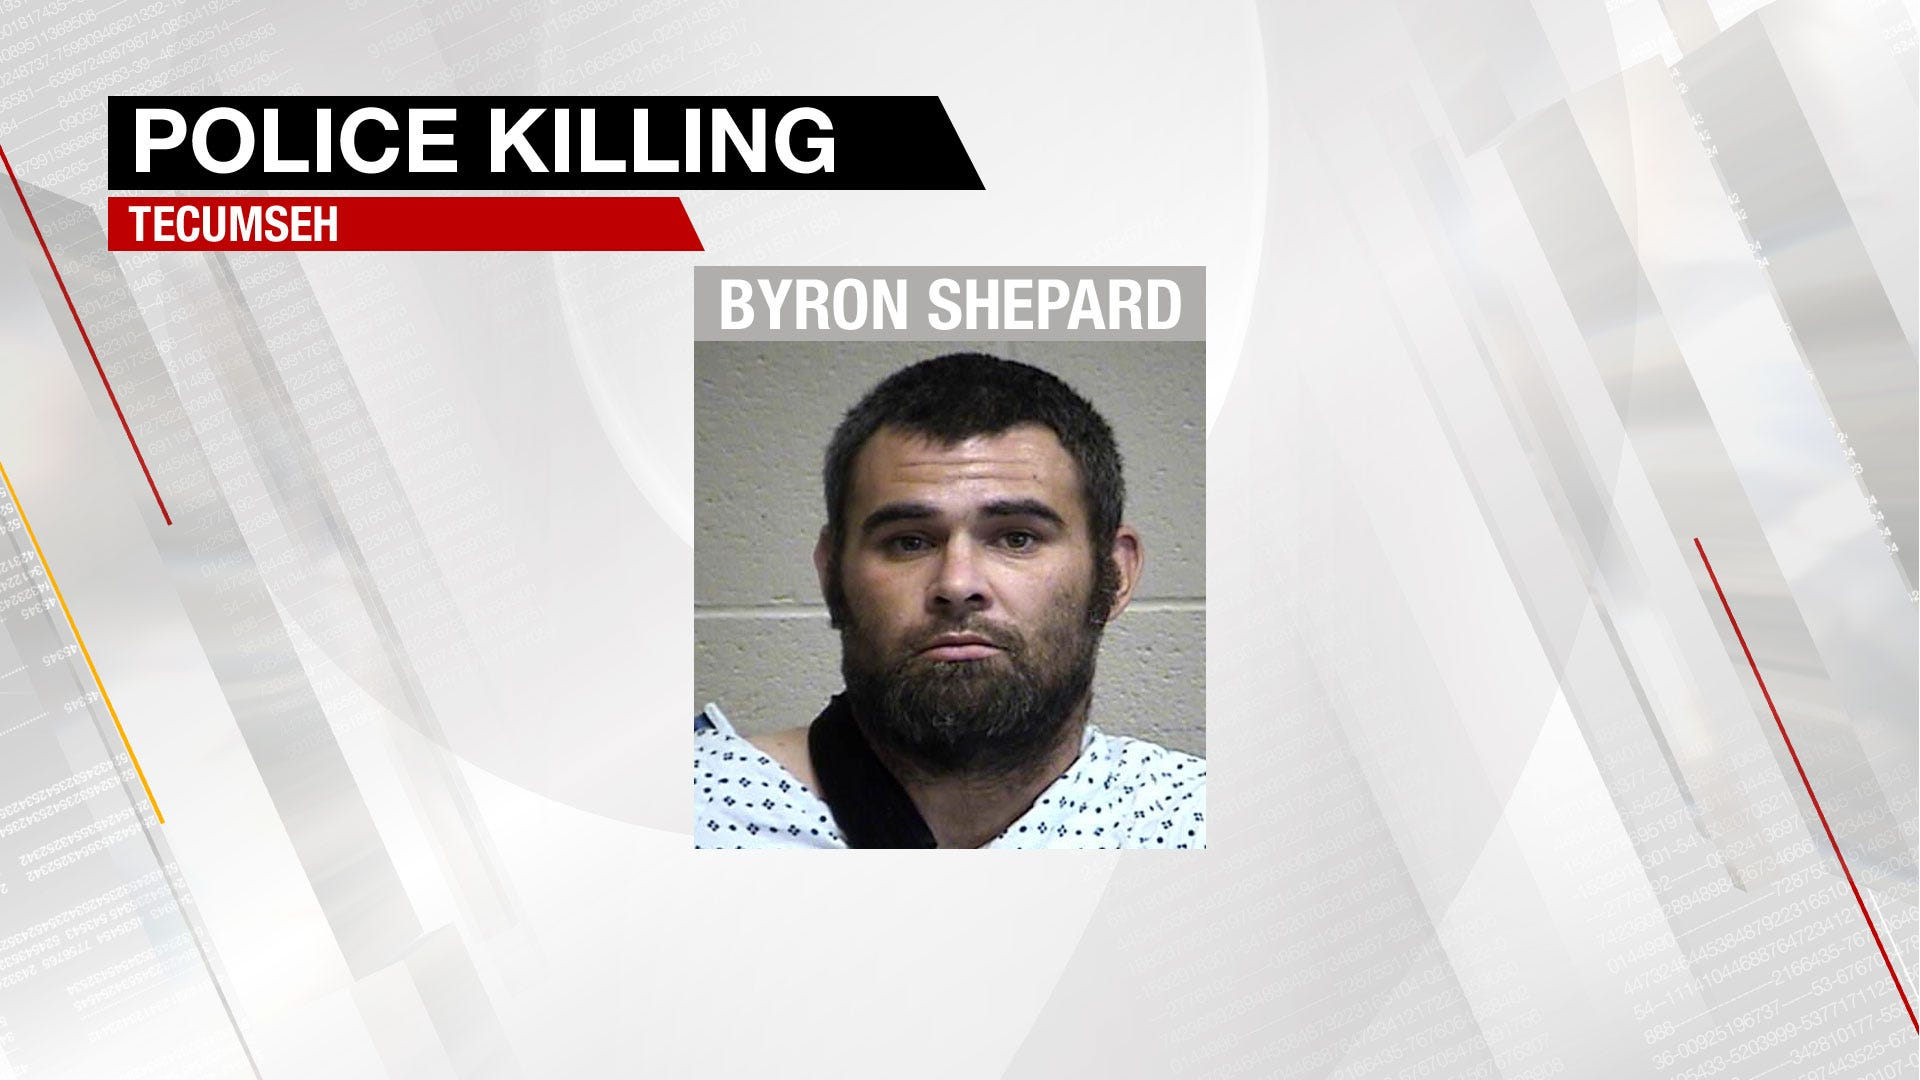 Suspect In Tecumseh Police Killing Now In Jail